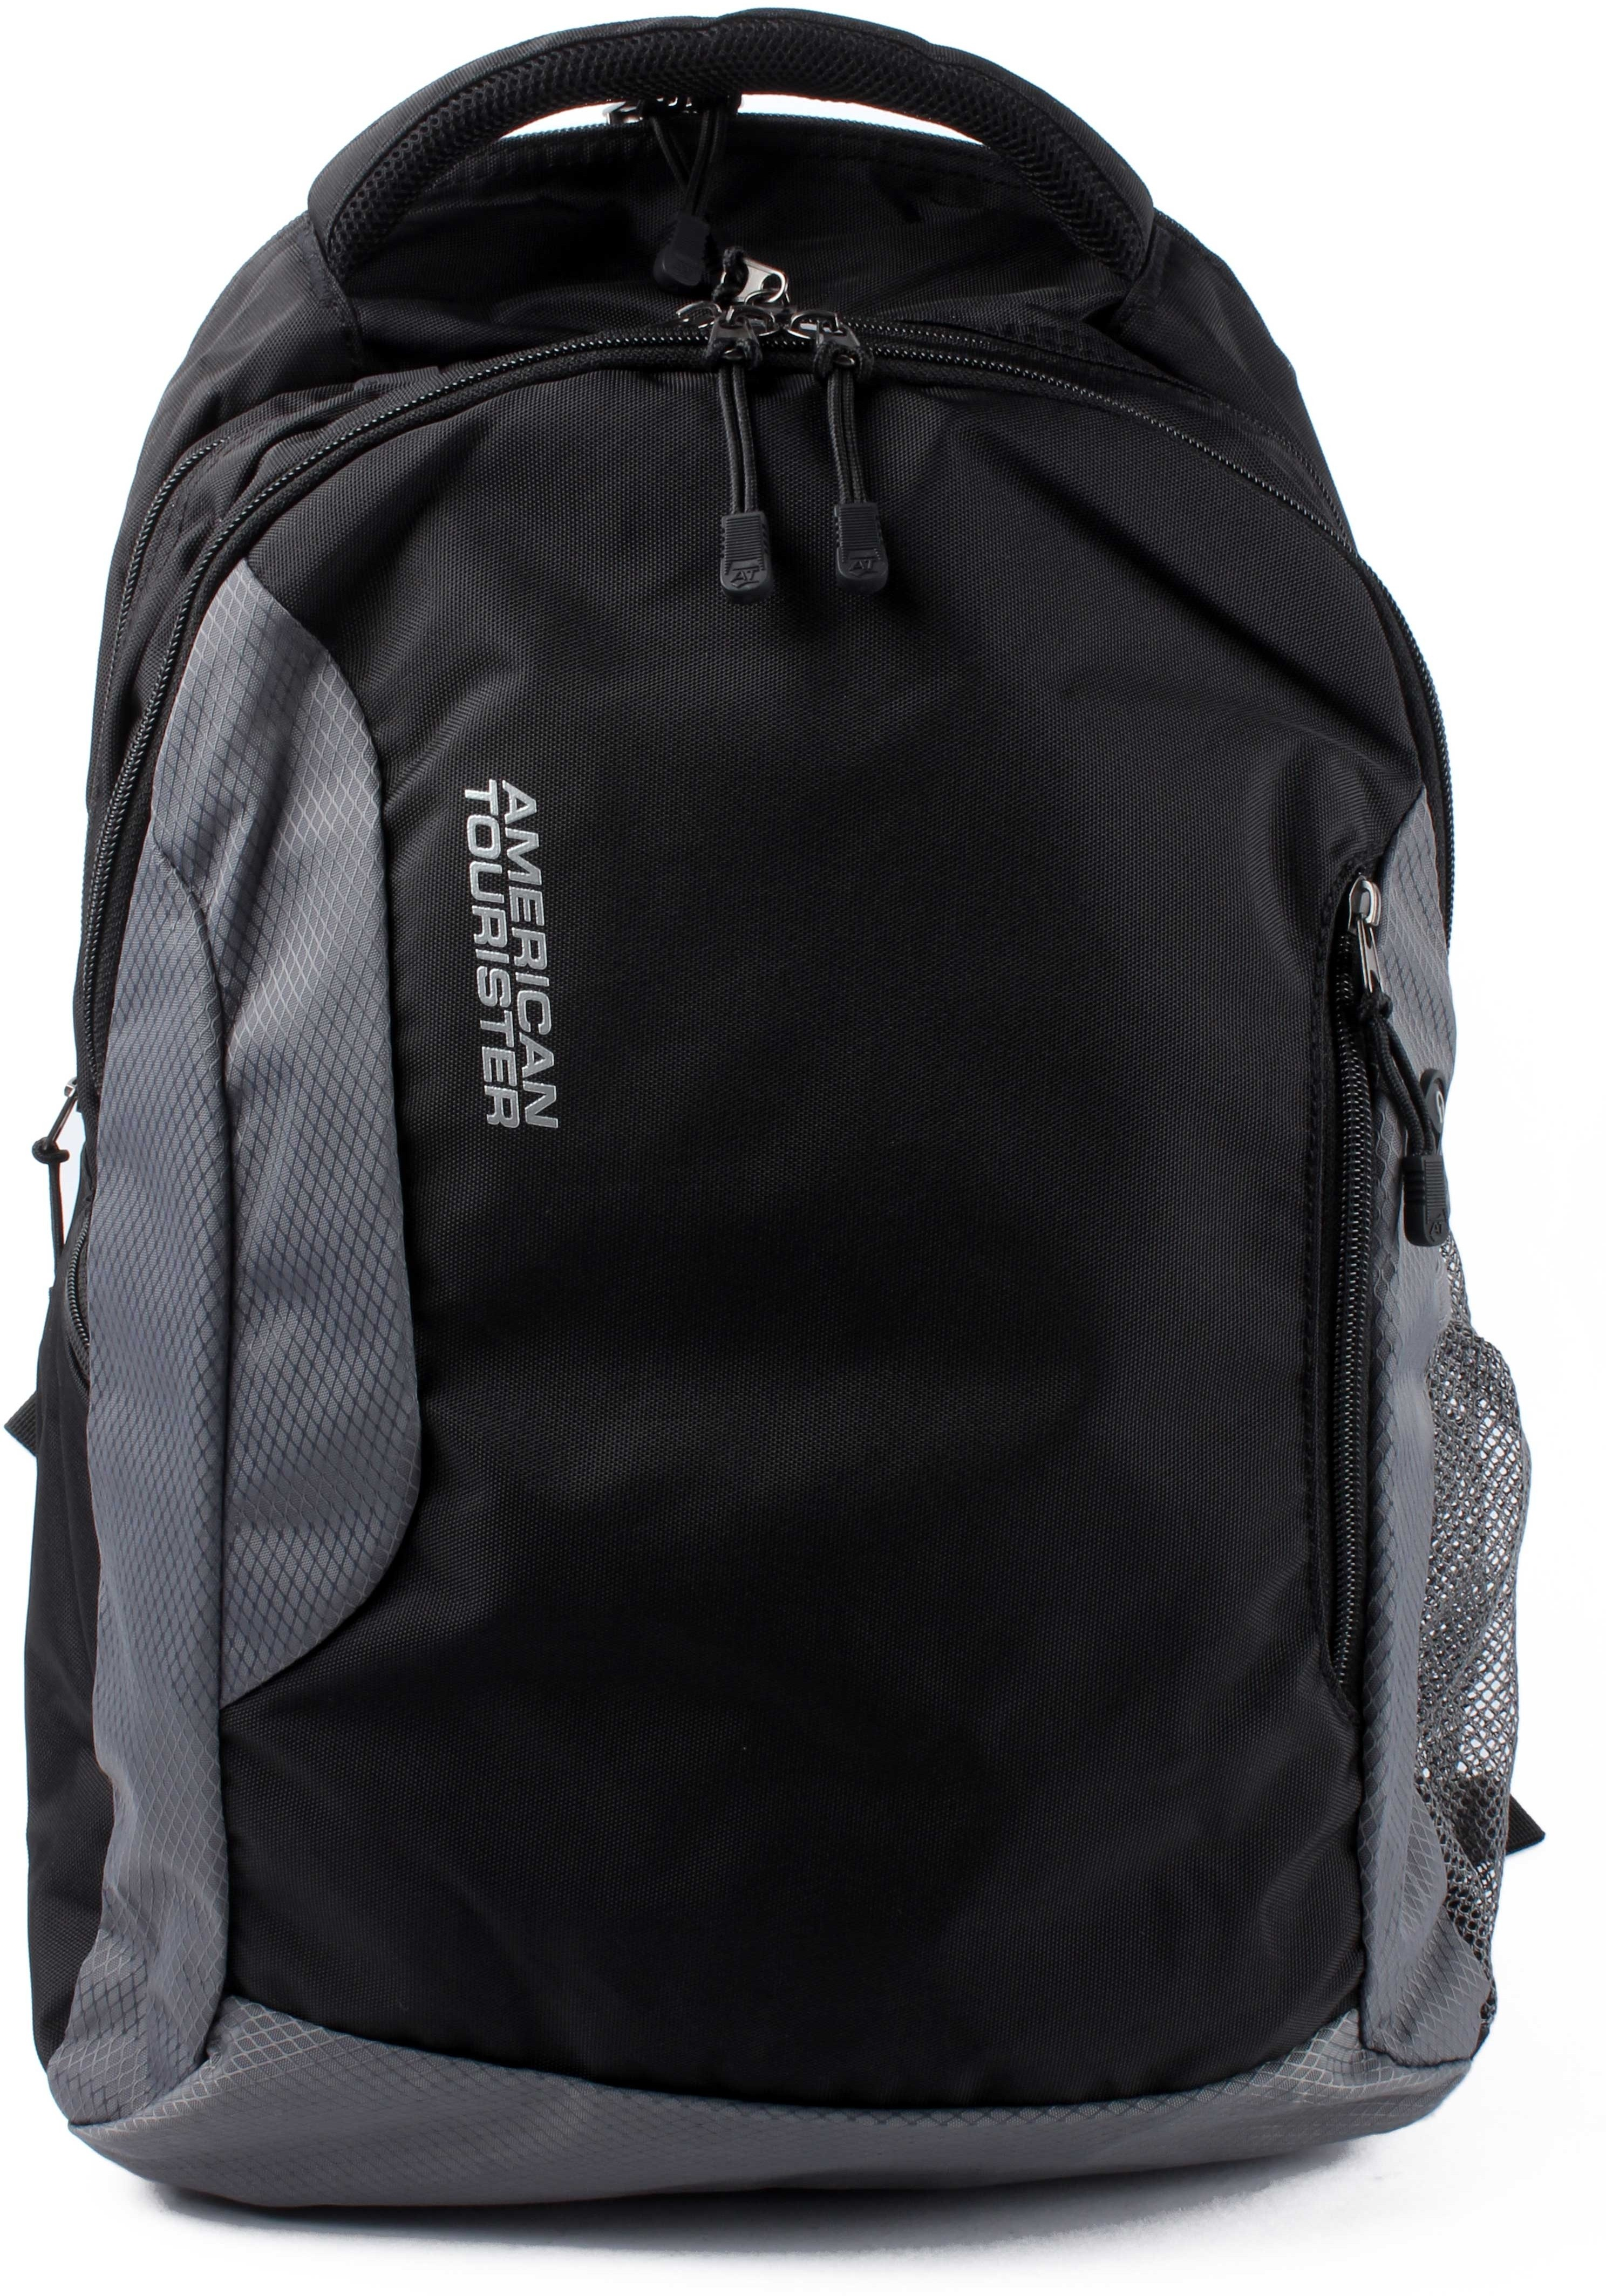 American Tourister Buzz Backpack Blk Price In India